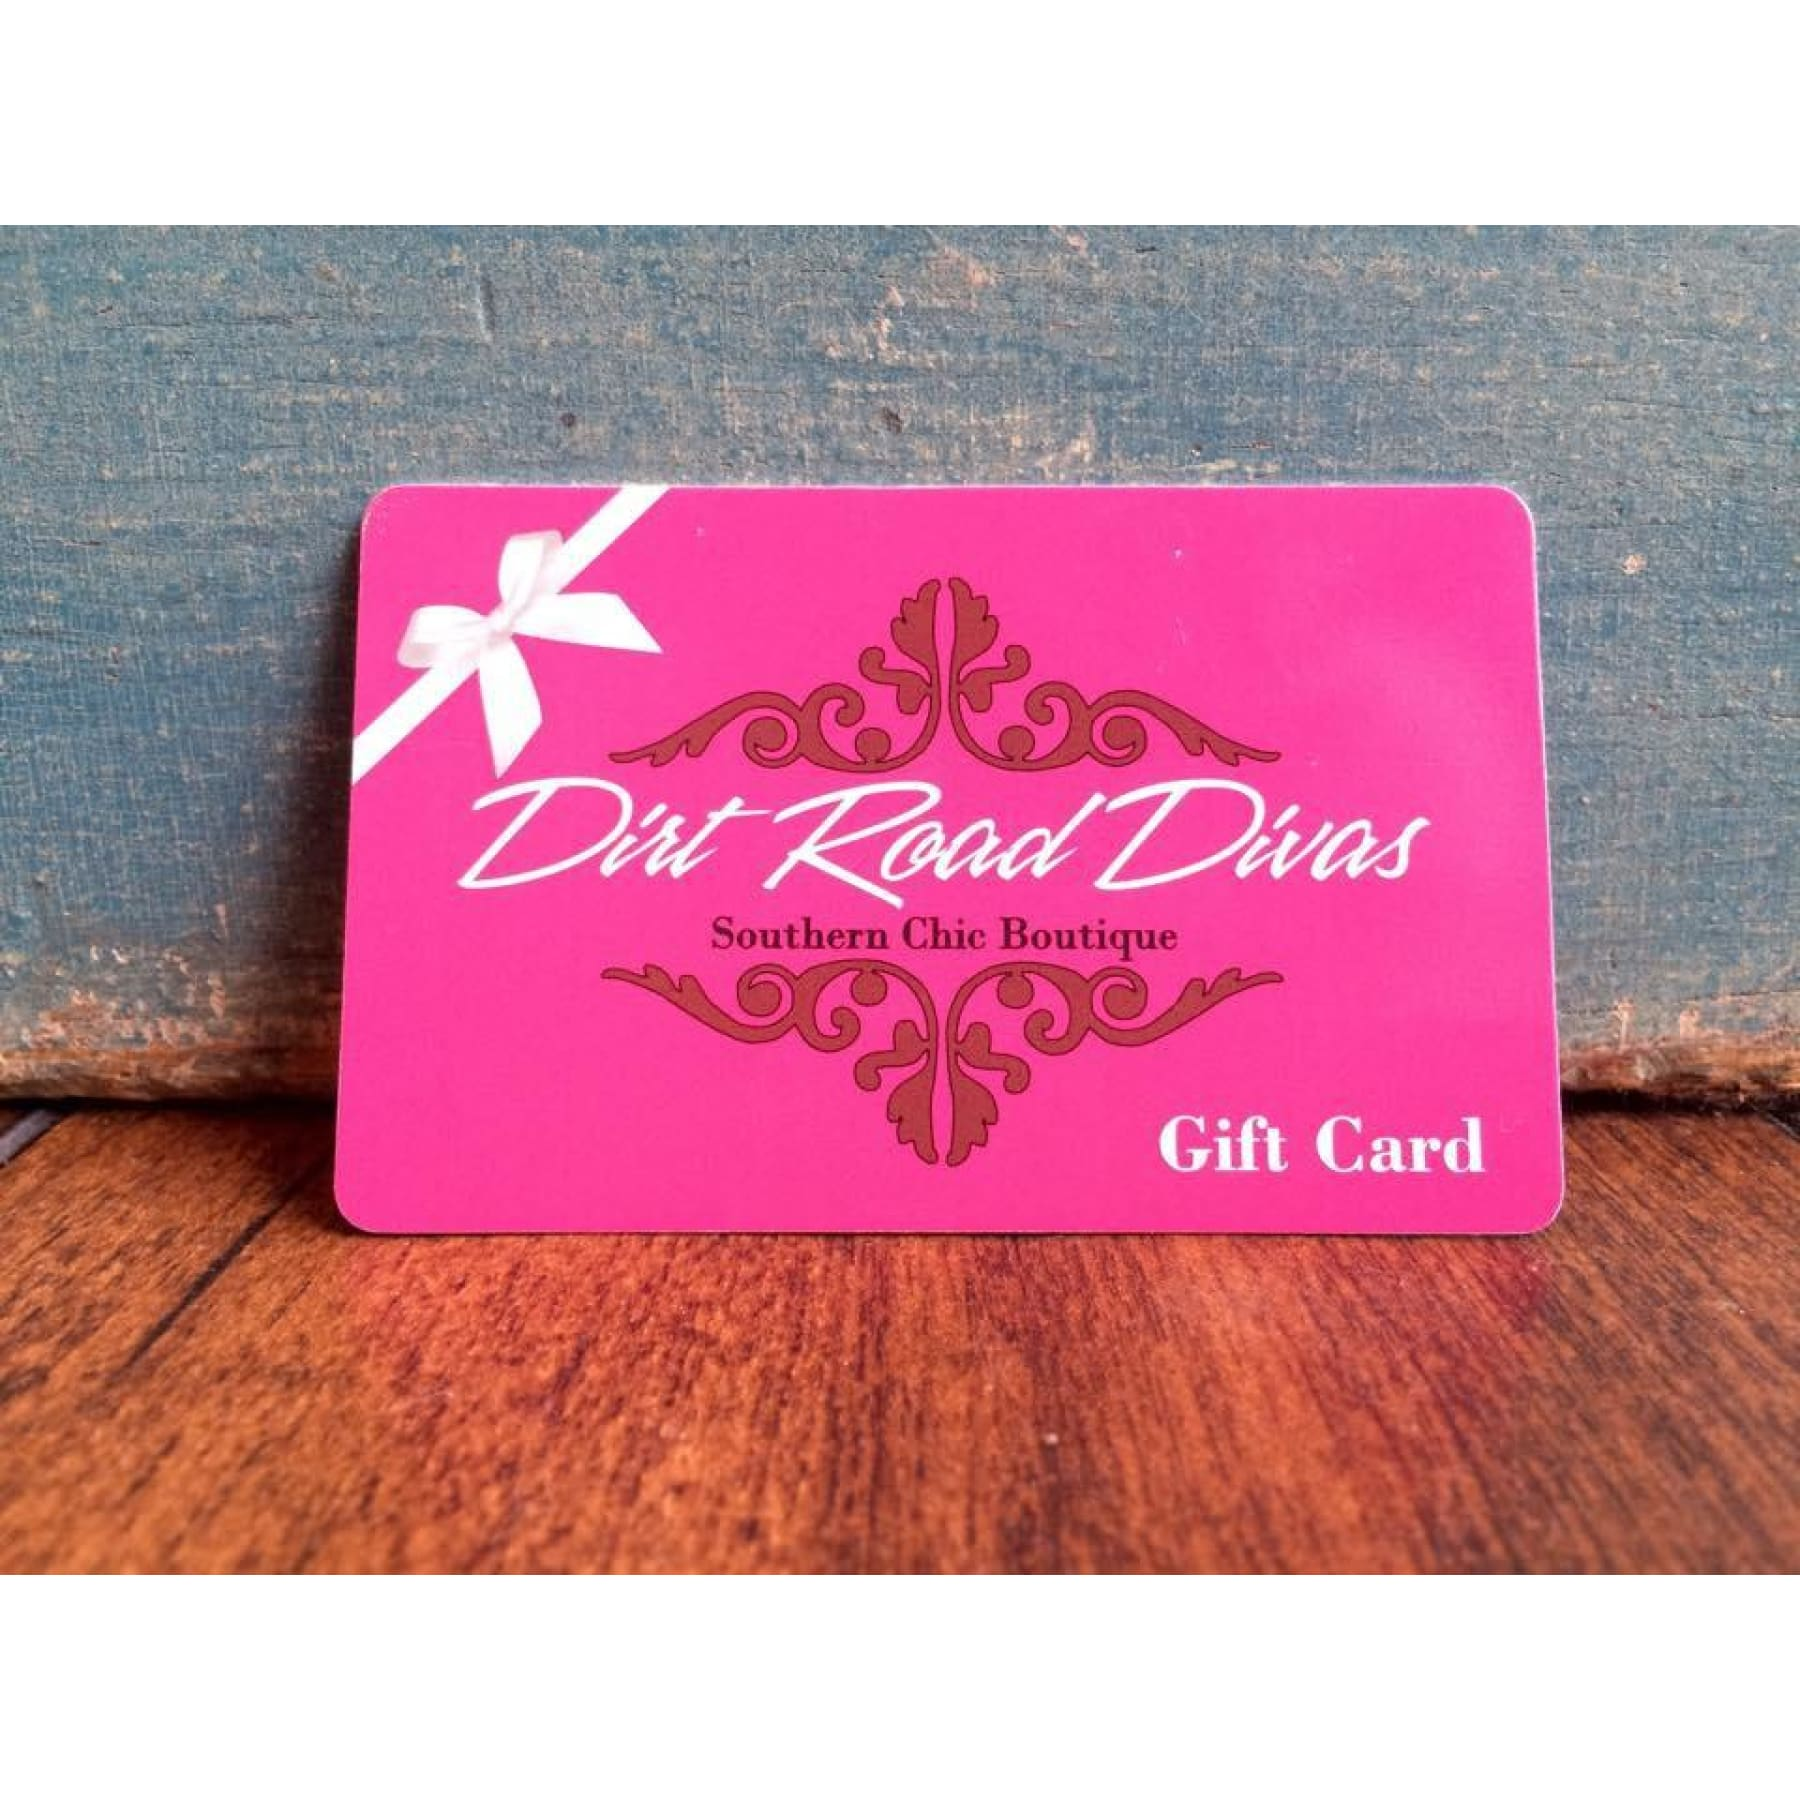 DRD Gift Card $25,Gift Card - Dirt Road Divas Boutique